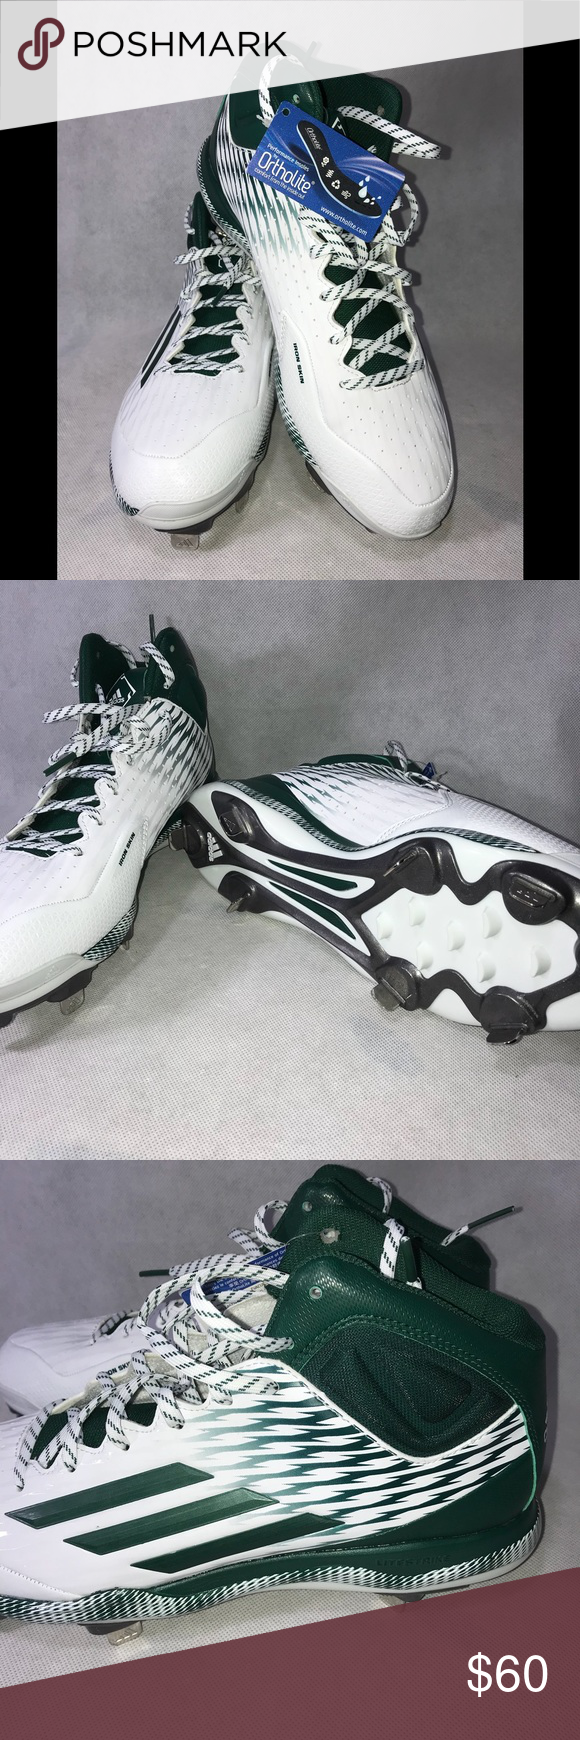 Adidas Baseball Cleats Adidas Baseball Baseball Cleats Adidas White Shoes